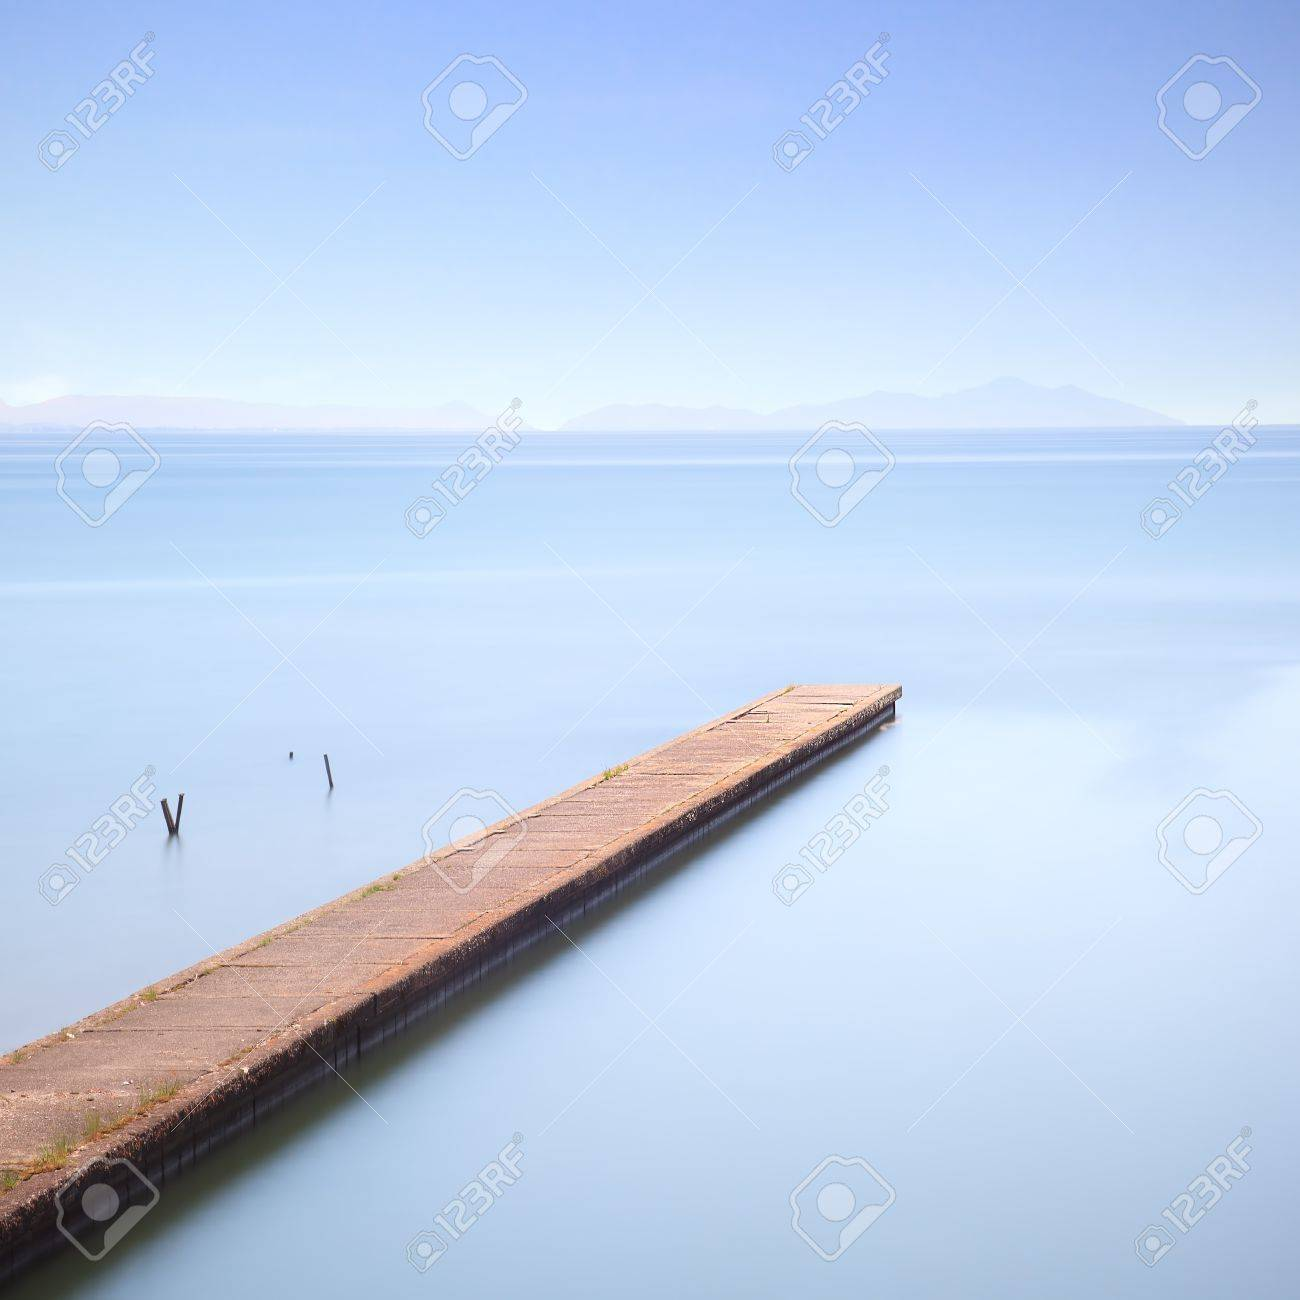 Concrete pier or jetty on a blue sea  Hills on background  Long exposure photography in Lido Camaiore, Versilia, Tuscany, Italy, Europe Stock Photo - 17811063